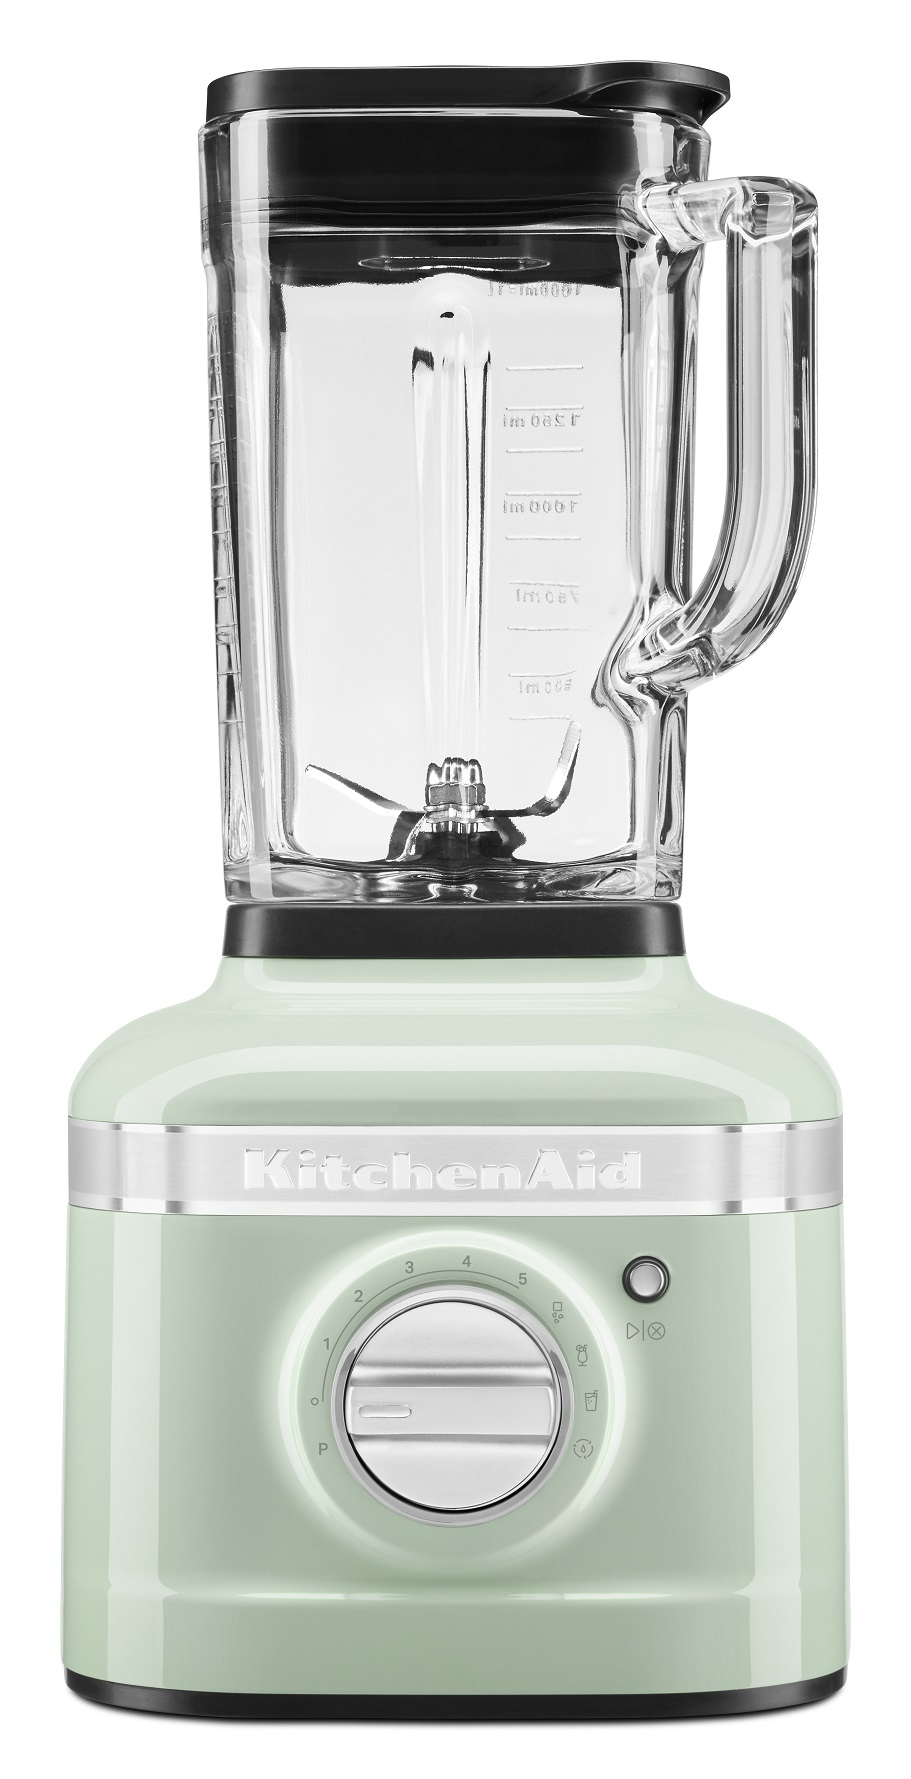 KitchenAid Artisan K400 Blender, KitchenAid, American Appliances, Blender, Kitchen Appliances, Win, Christmas Giveaways, The Frenchie Mummy